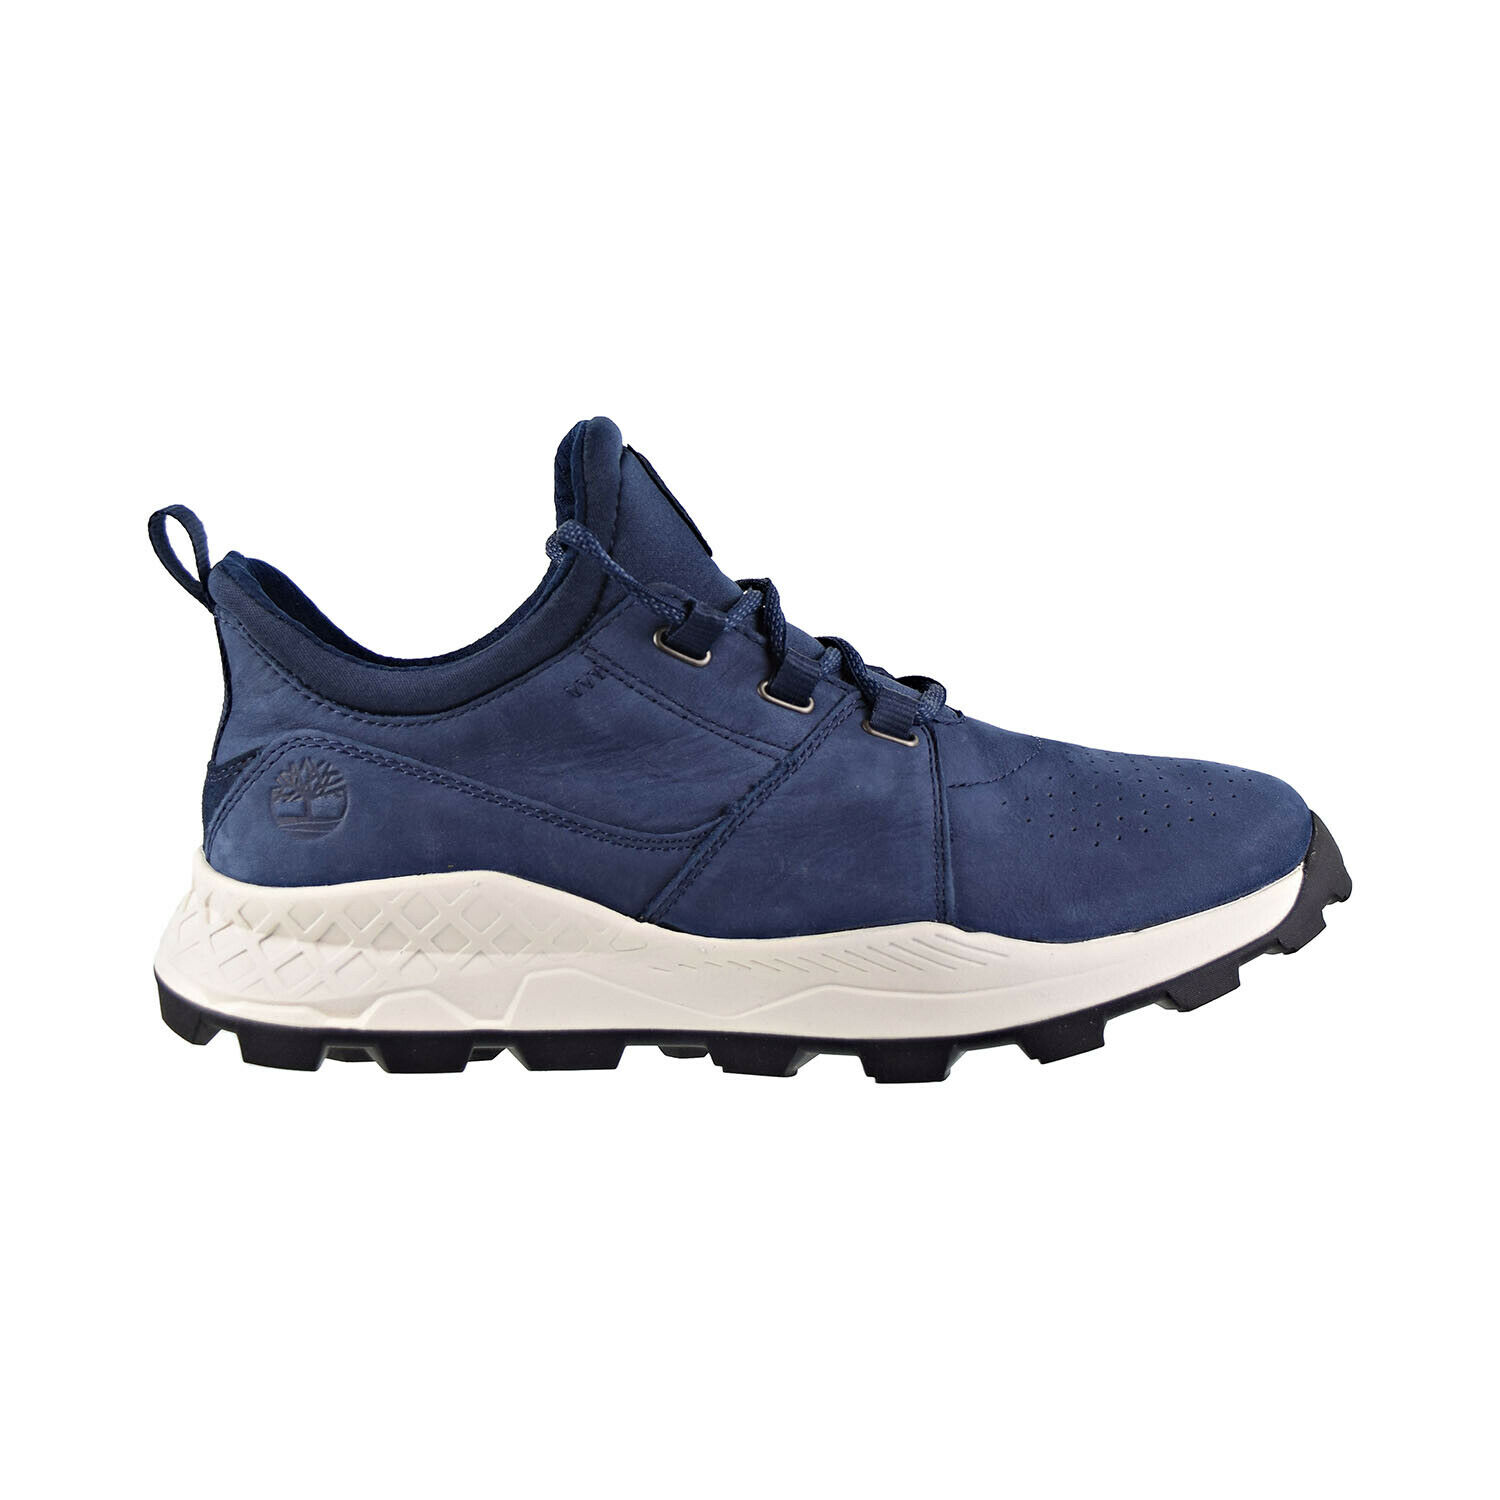 Timberland Brooklyn Lace Oxford Men's Shoes Navy Nubuck TB0A26G5